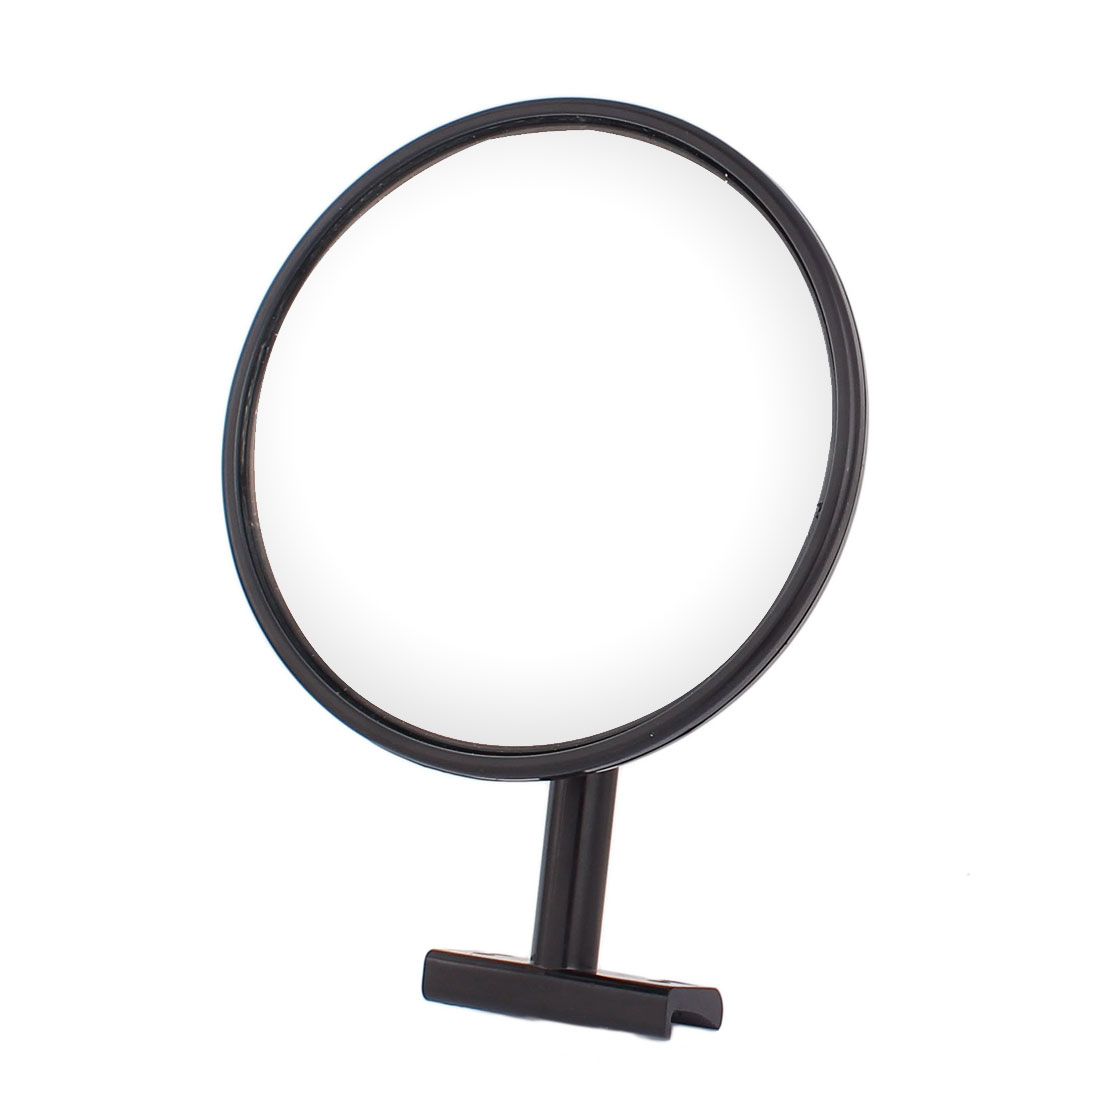 Unviersal 155mm Dia Round Wide Angle Convex Side Rearview Mirror for Car Truck